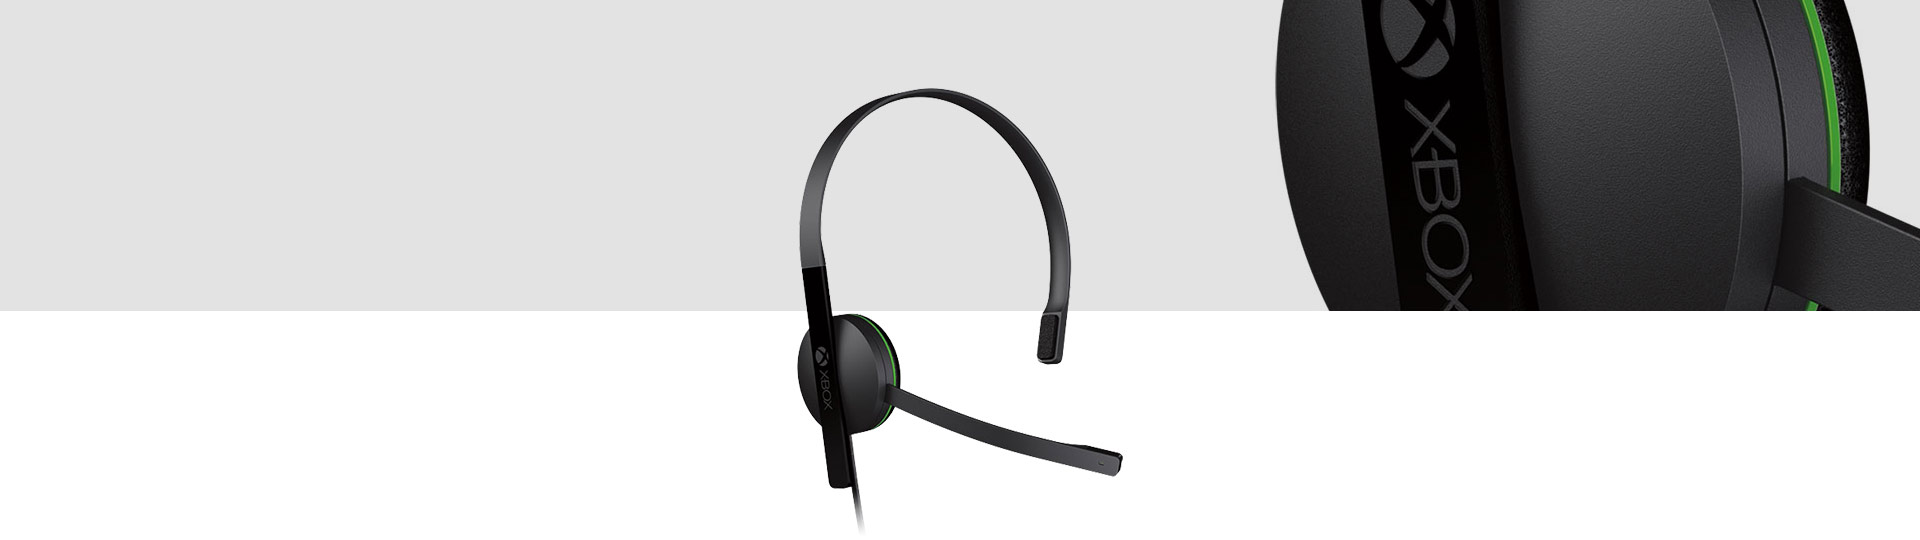 Xbox One Chat-Headset